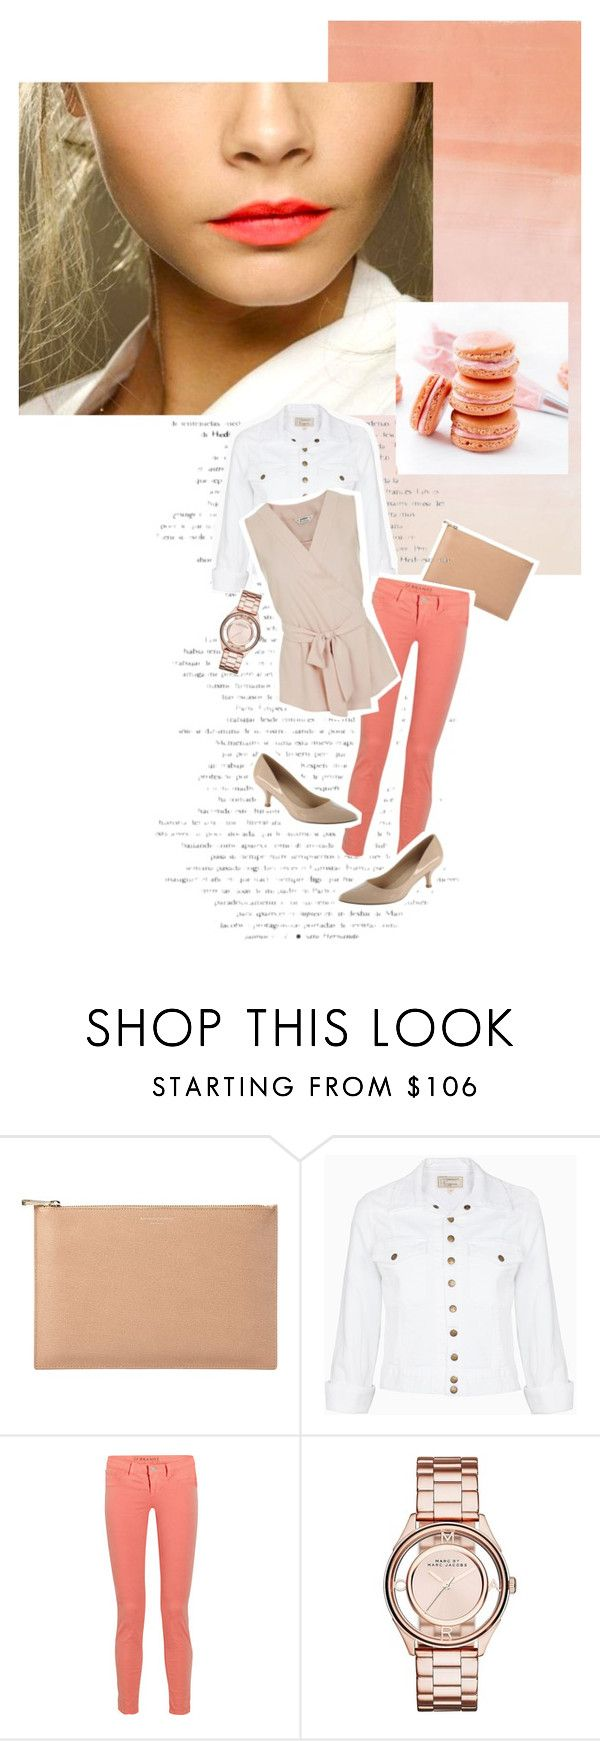 """Coral and nude"" by clampigirl ❤ liked on Polyvore featuring Aspinal of London, Current/Elliott, J Brand, ALDO, Marc by Marc Jacobs, Miss Selfridge, women's clothing, women, female and woman"